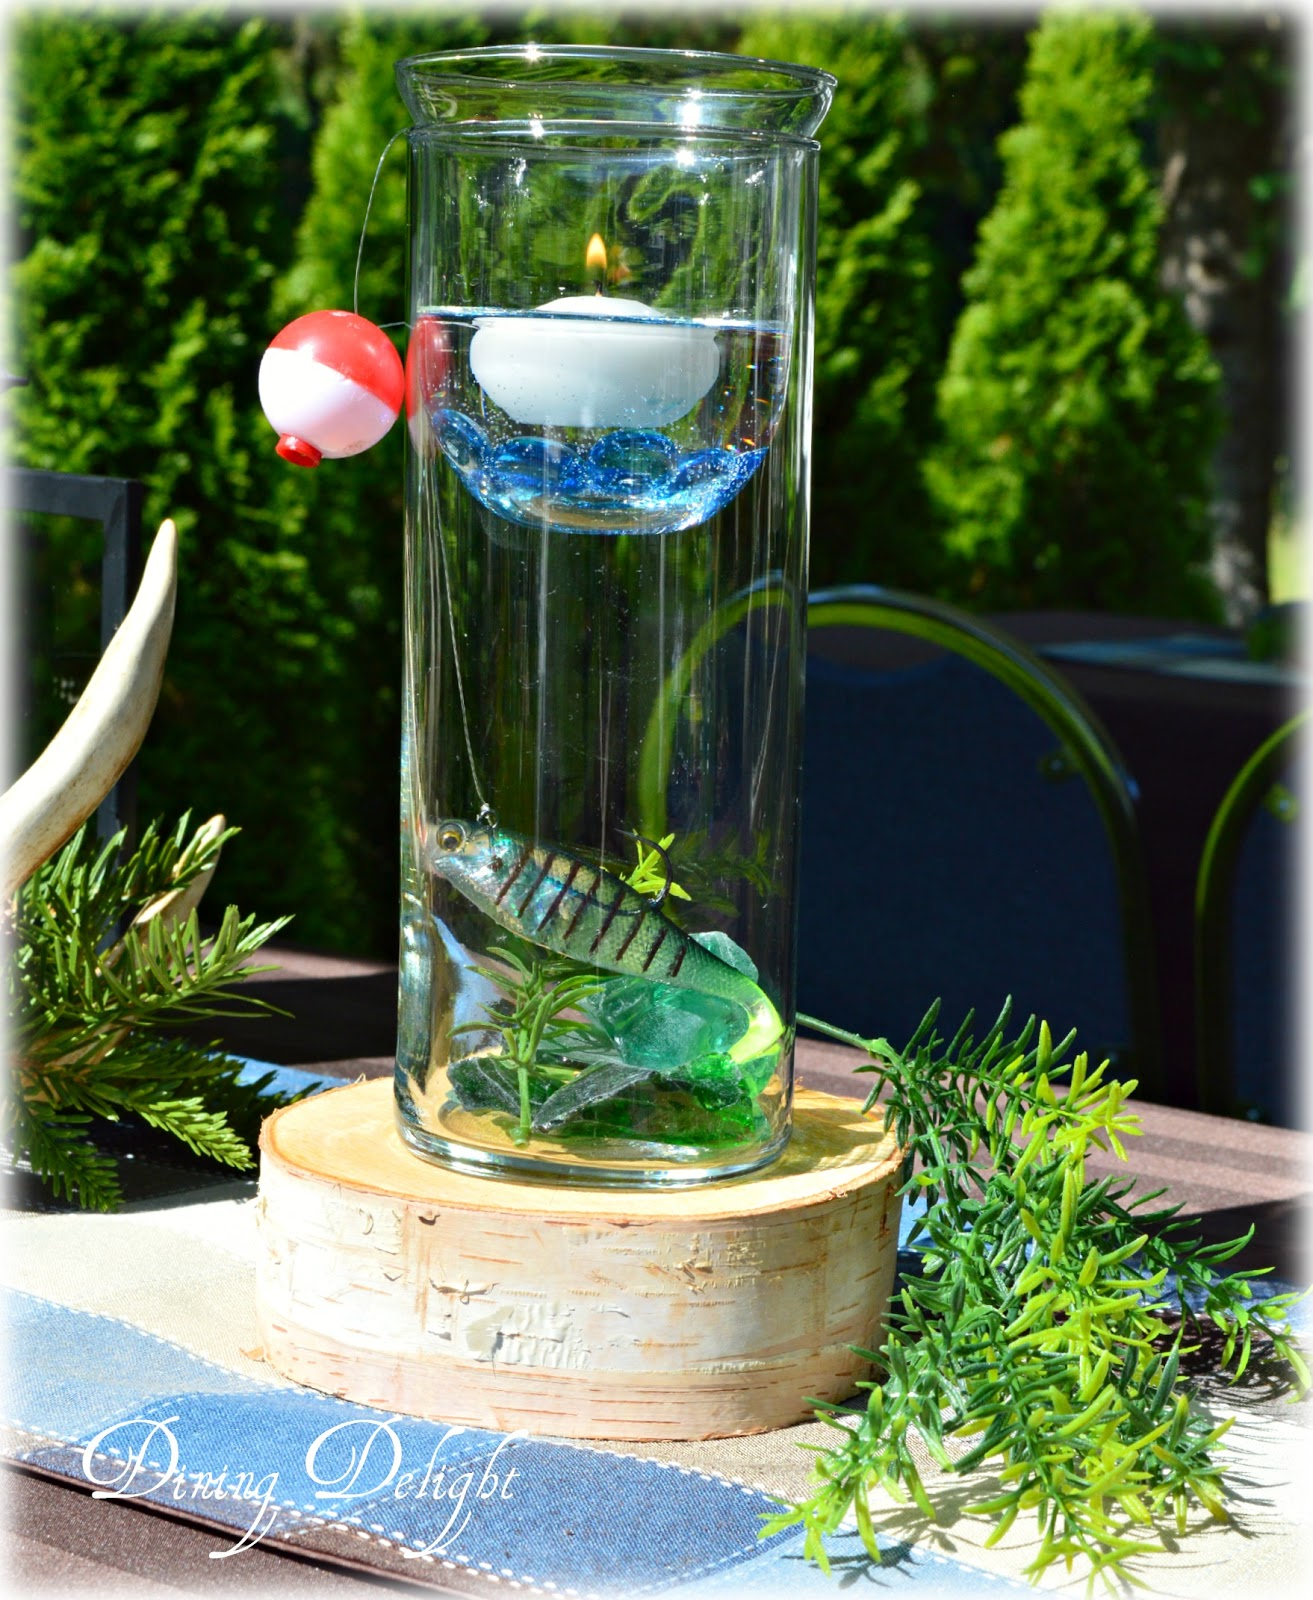 Dining delight fishing centerpiece in cylinder vase - Centre de table vase cylindrique ...